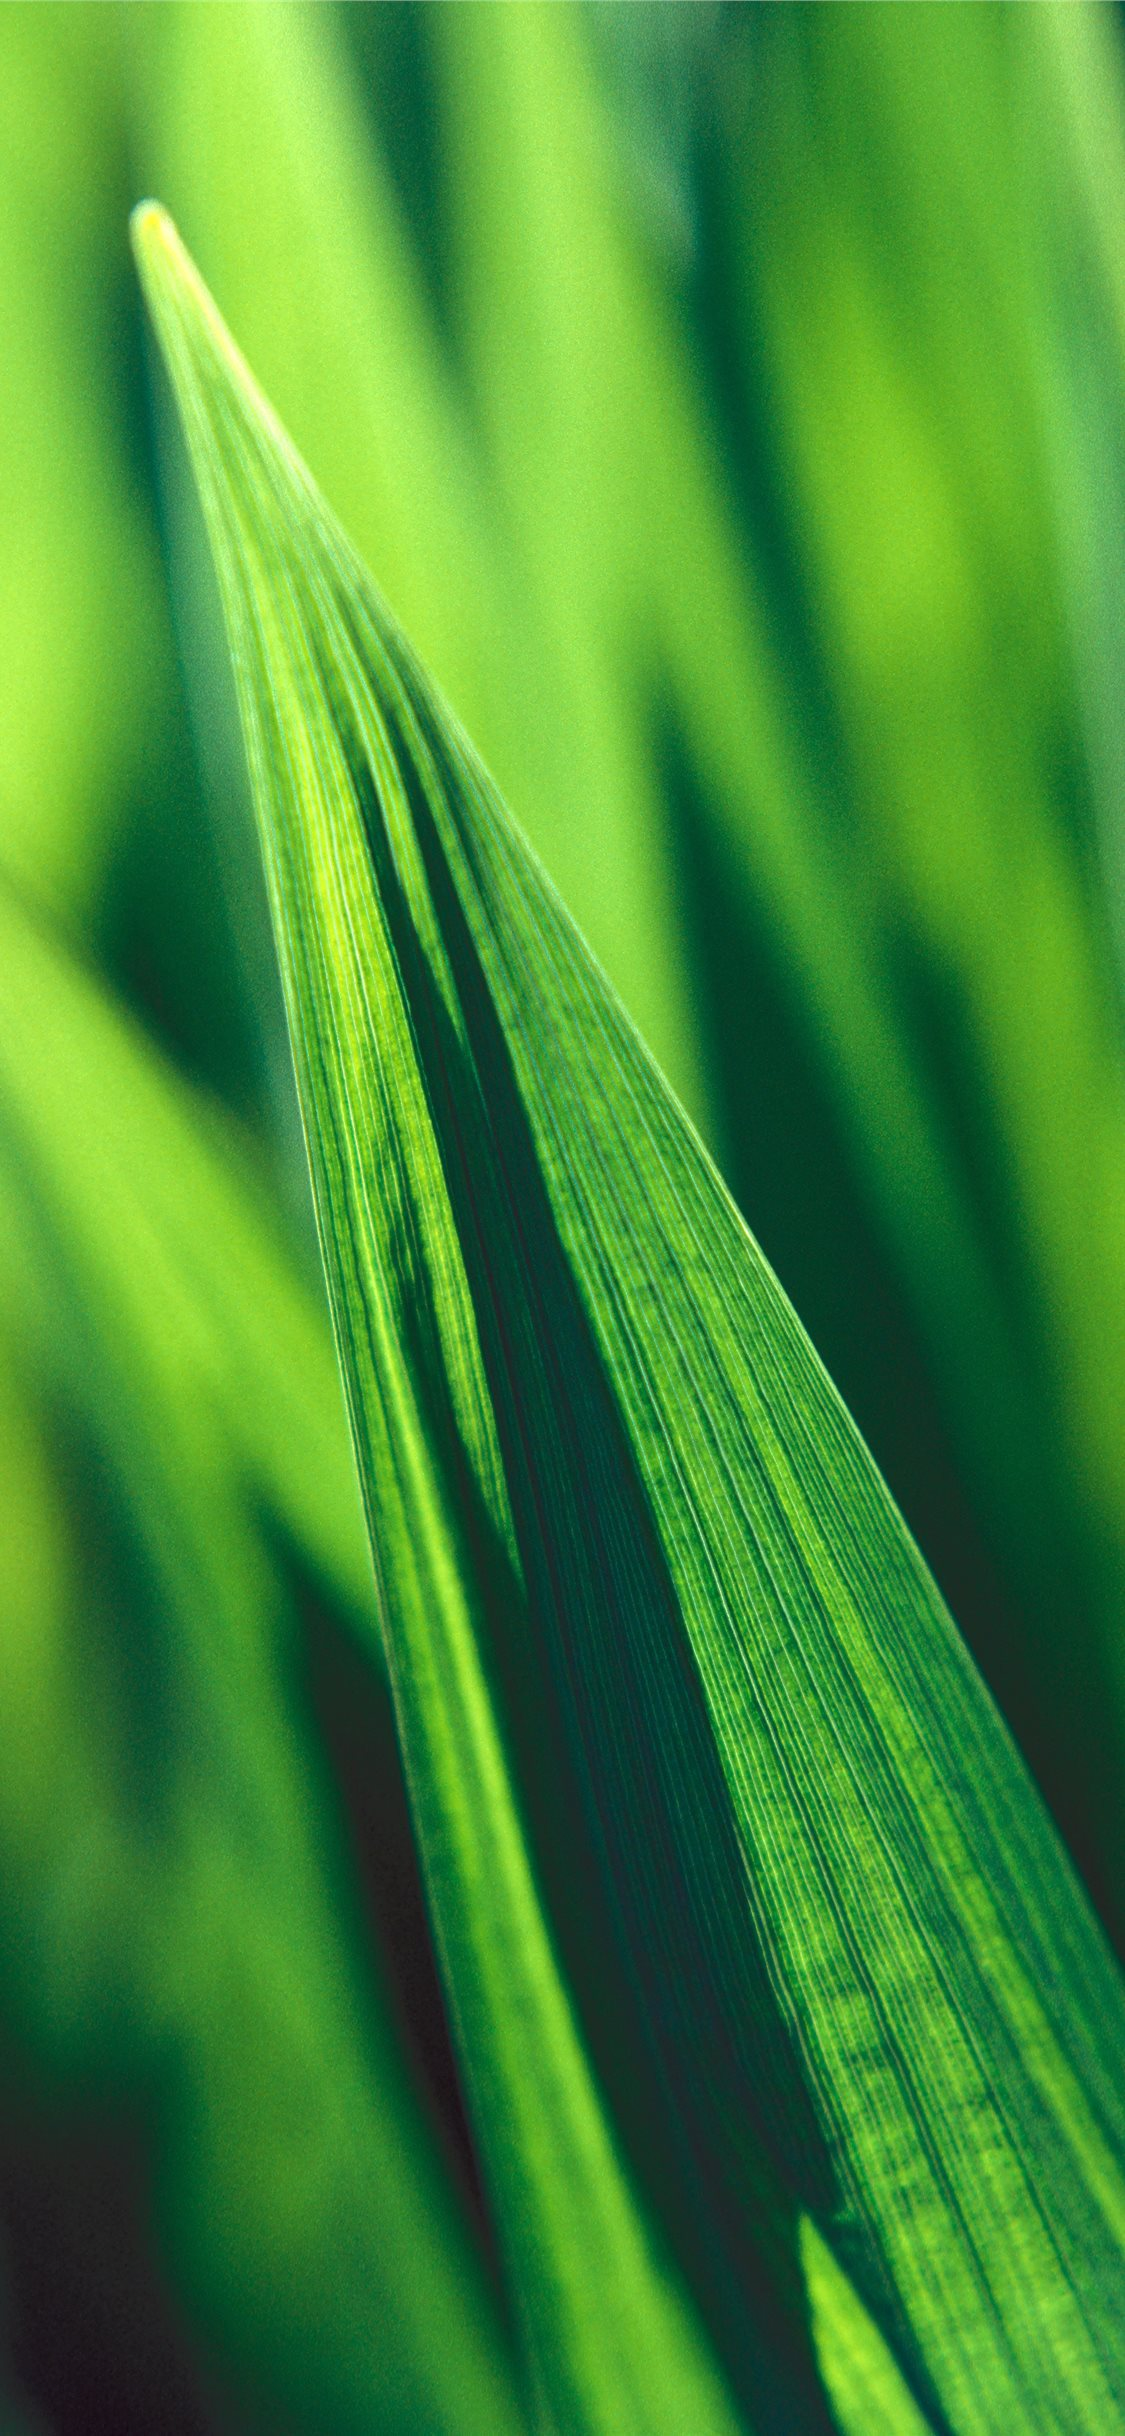 Green Reeds Iphone Wallpapers Free Download